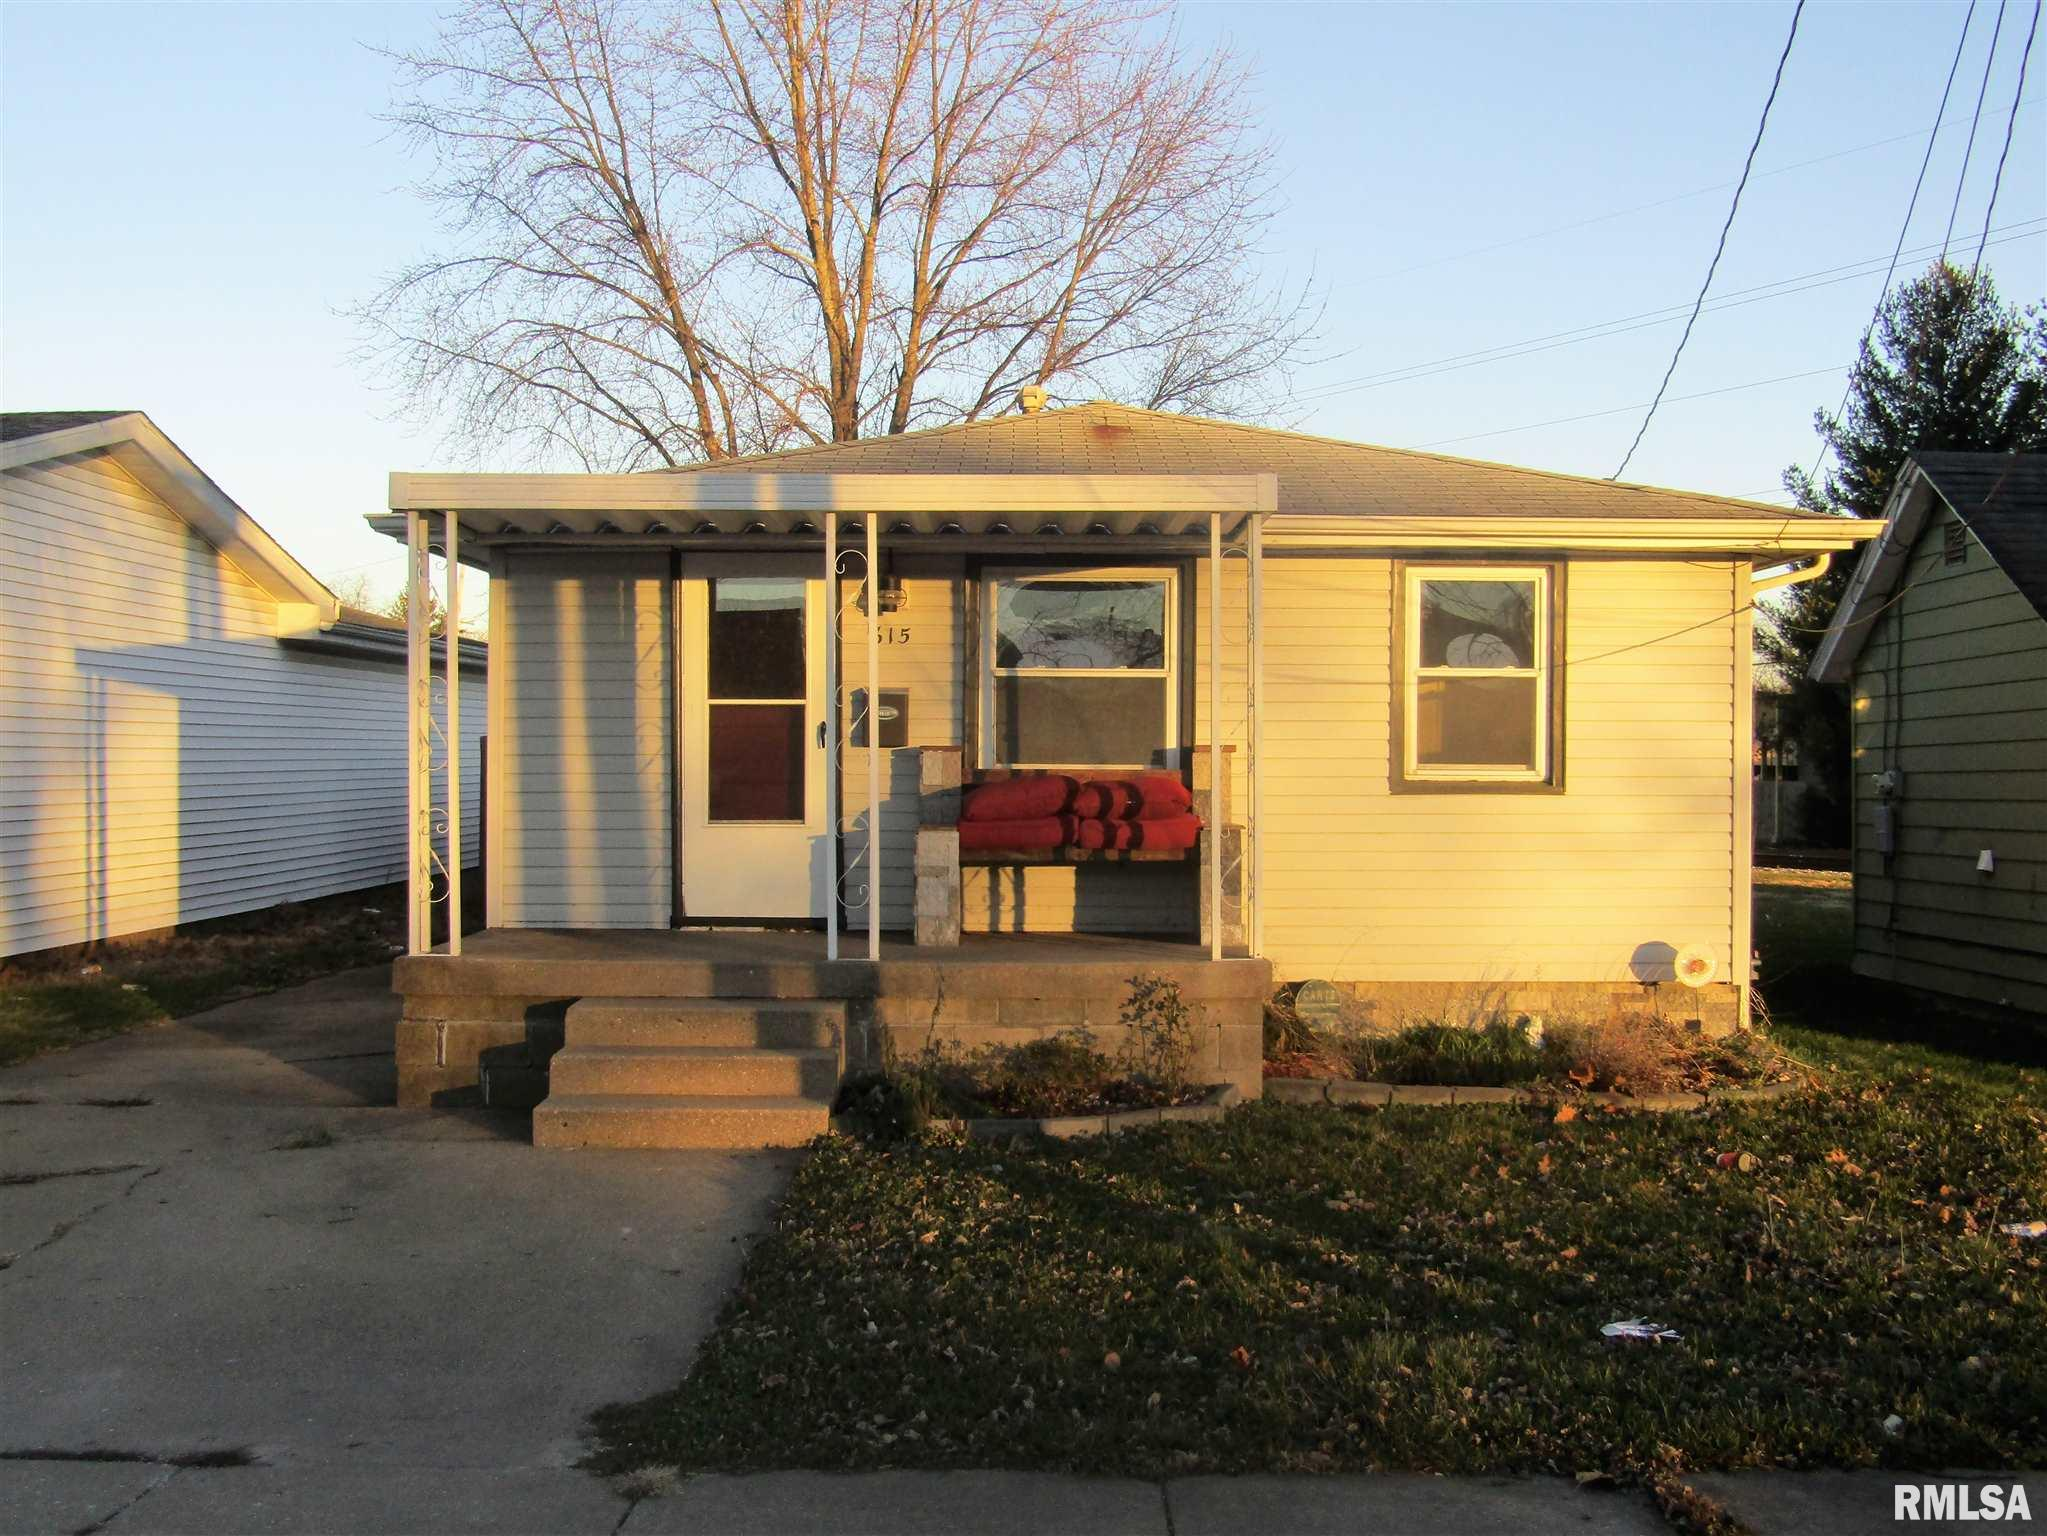 615 S MAPLE Property Photo - Lewistown, IL real estate listing